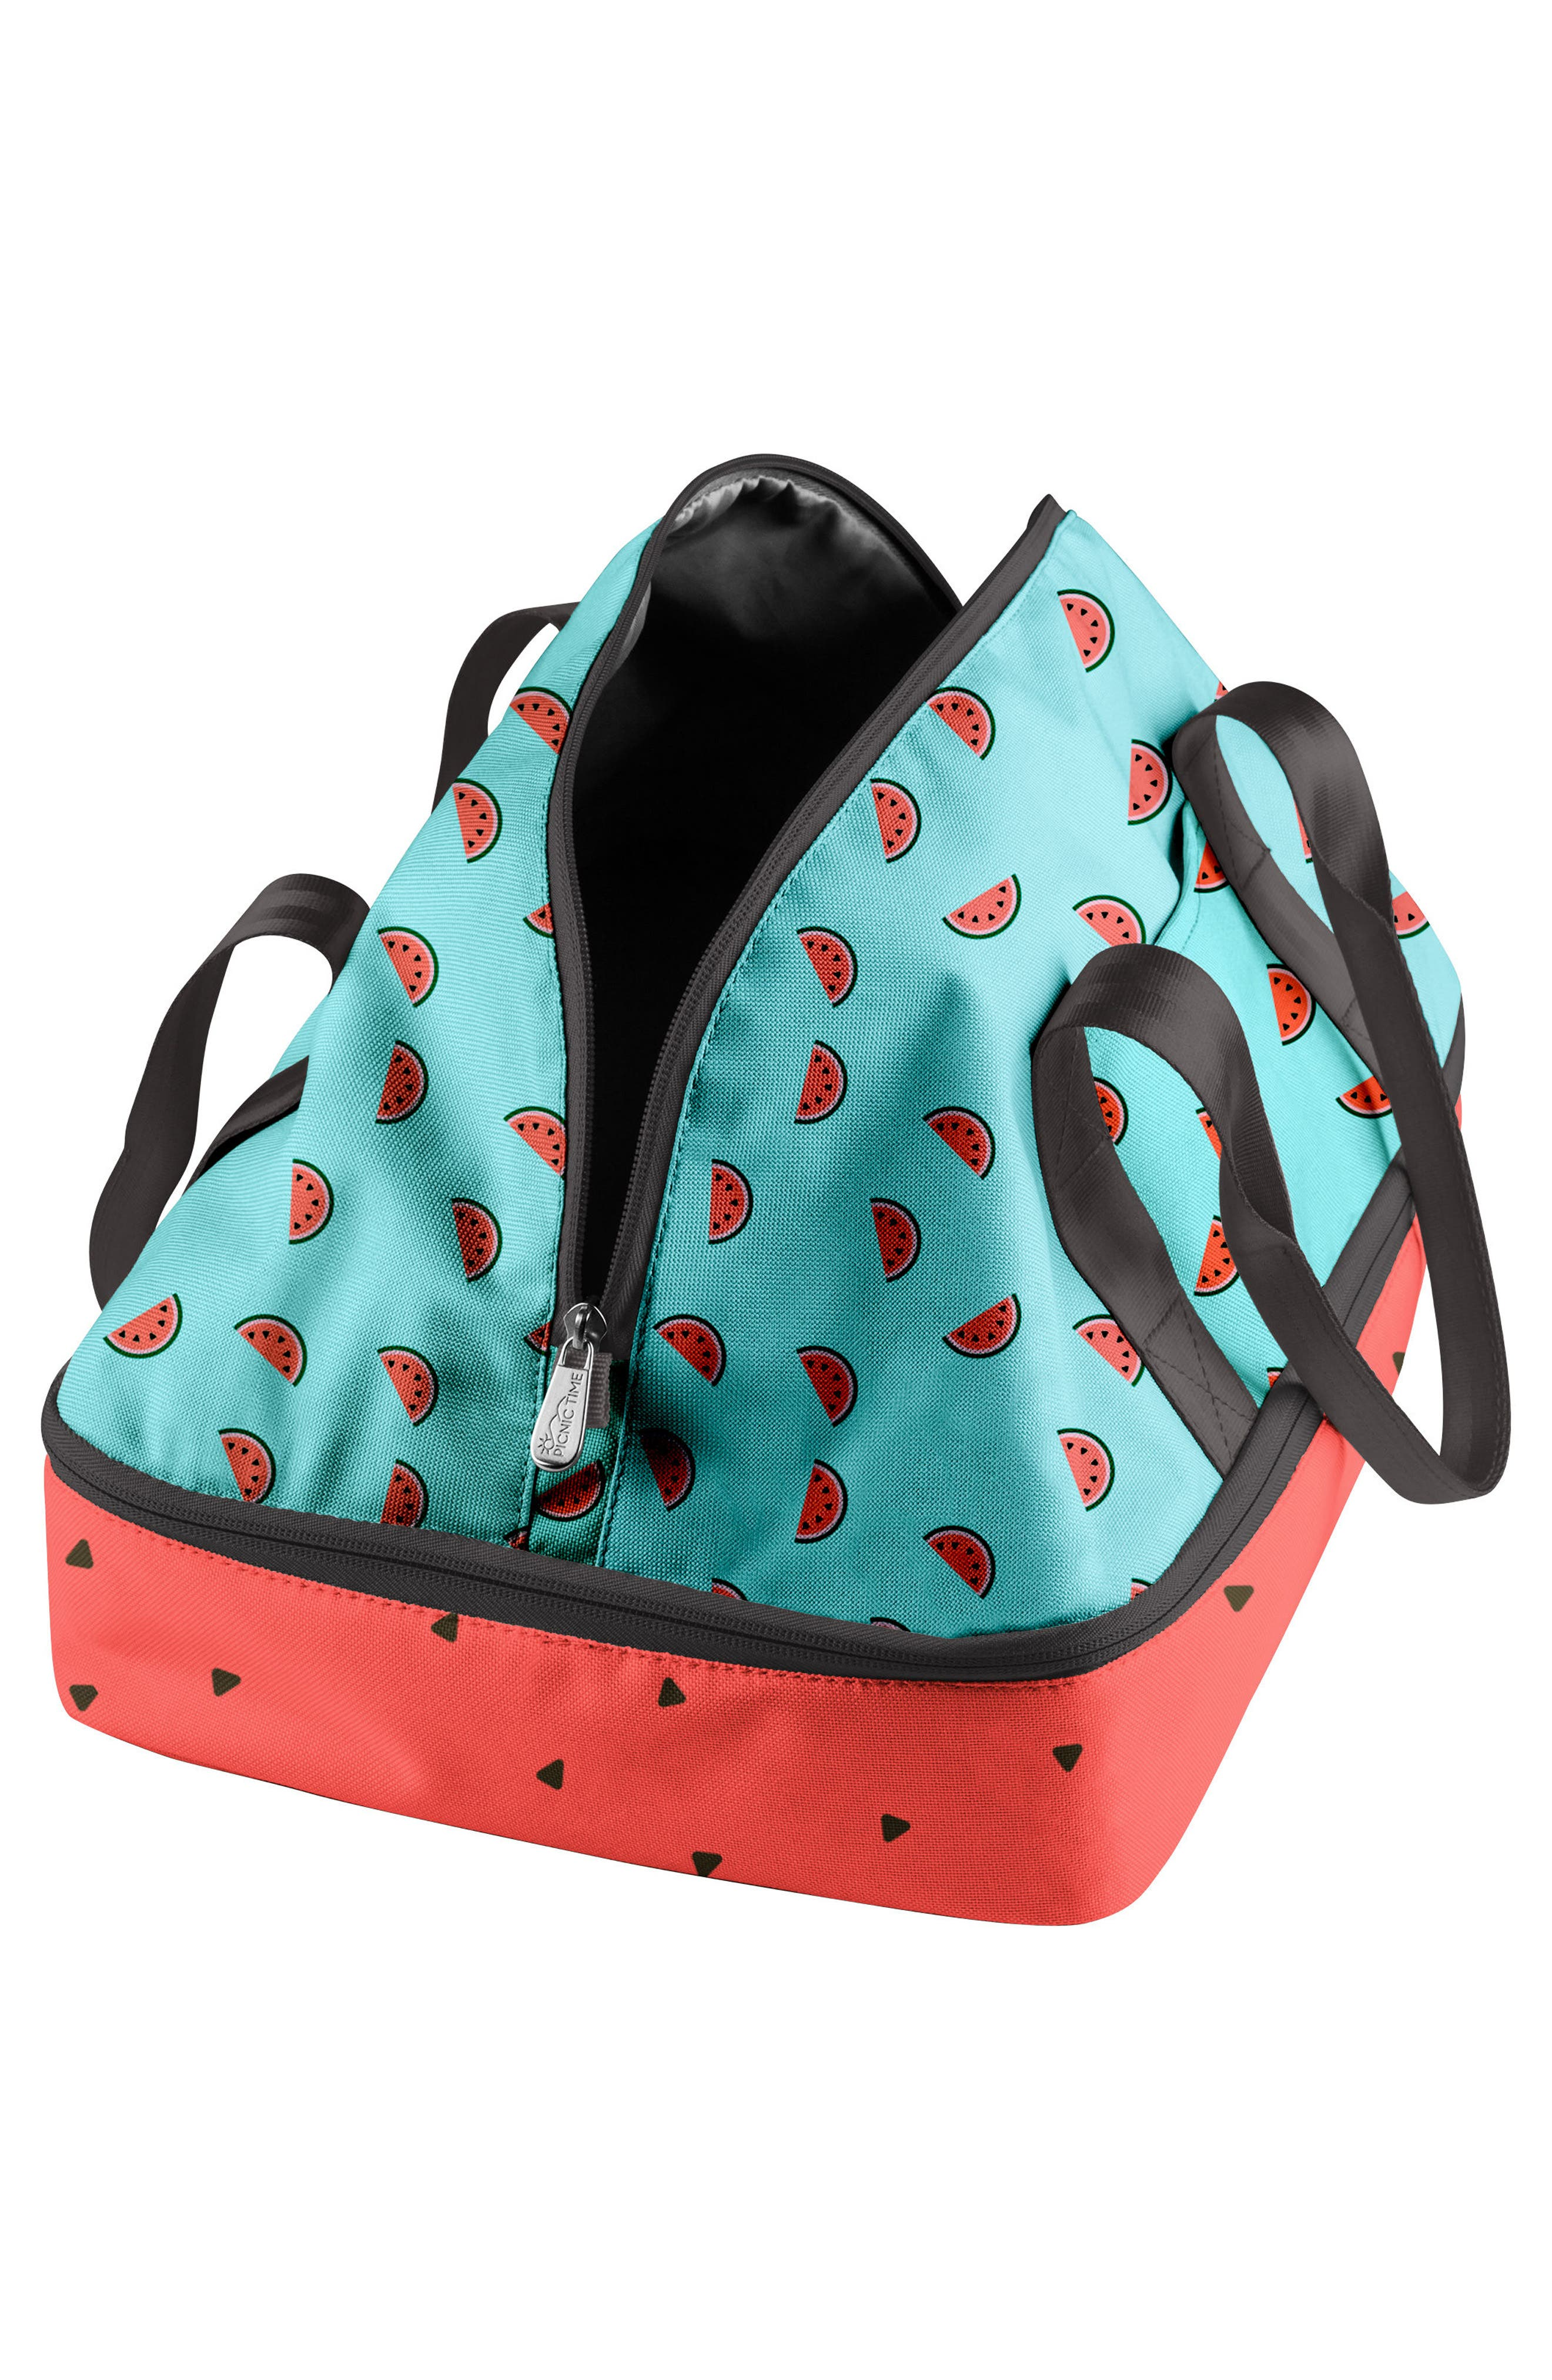 'Potluck' Casserole Tote,                             Alternate thumbnail 2, color,                             BLUE WATERMELON